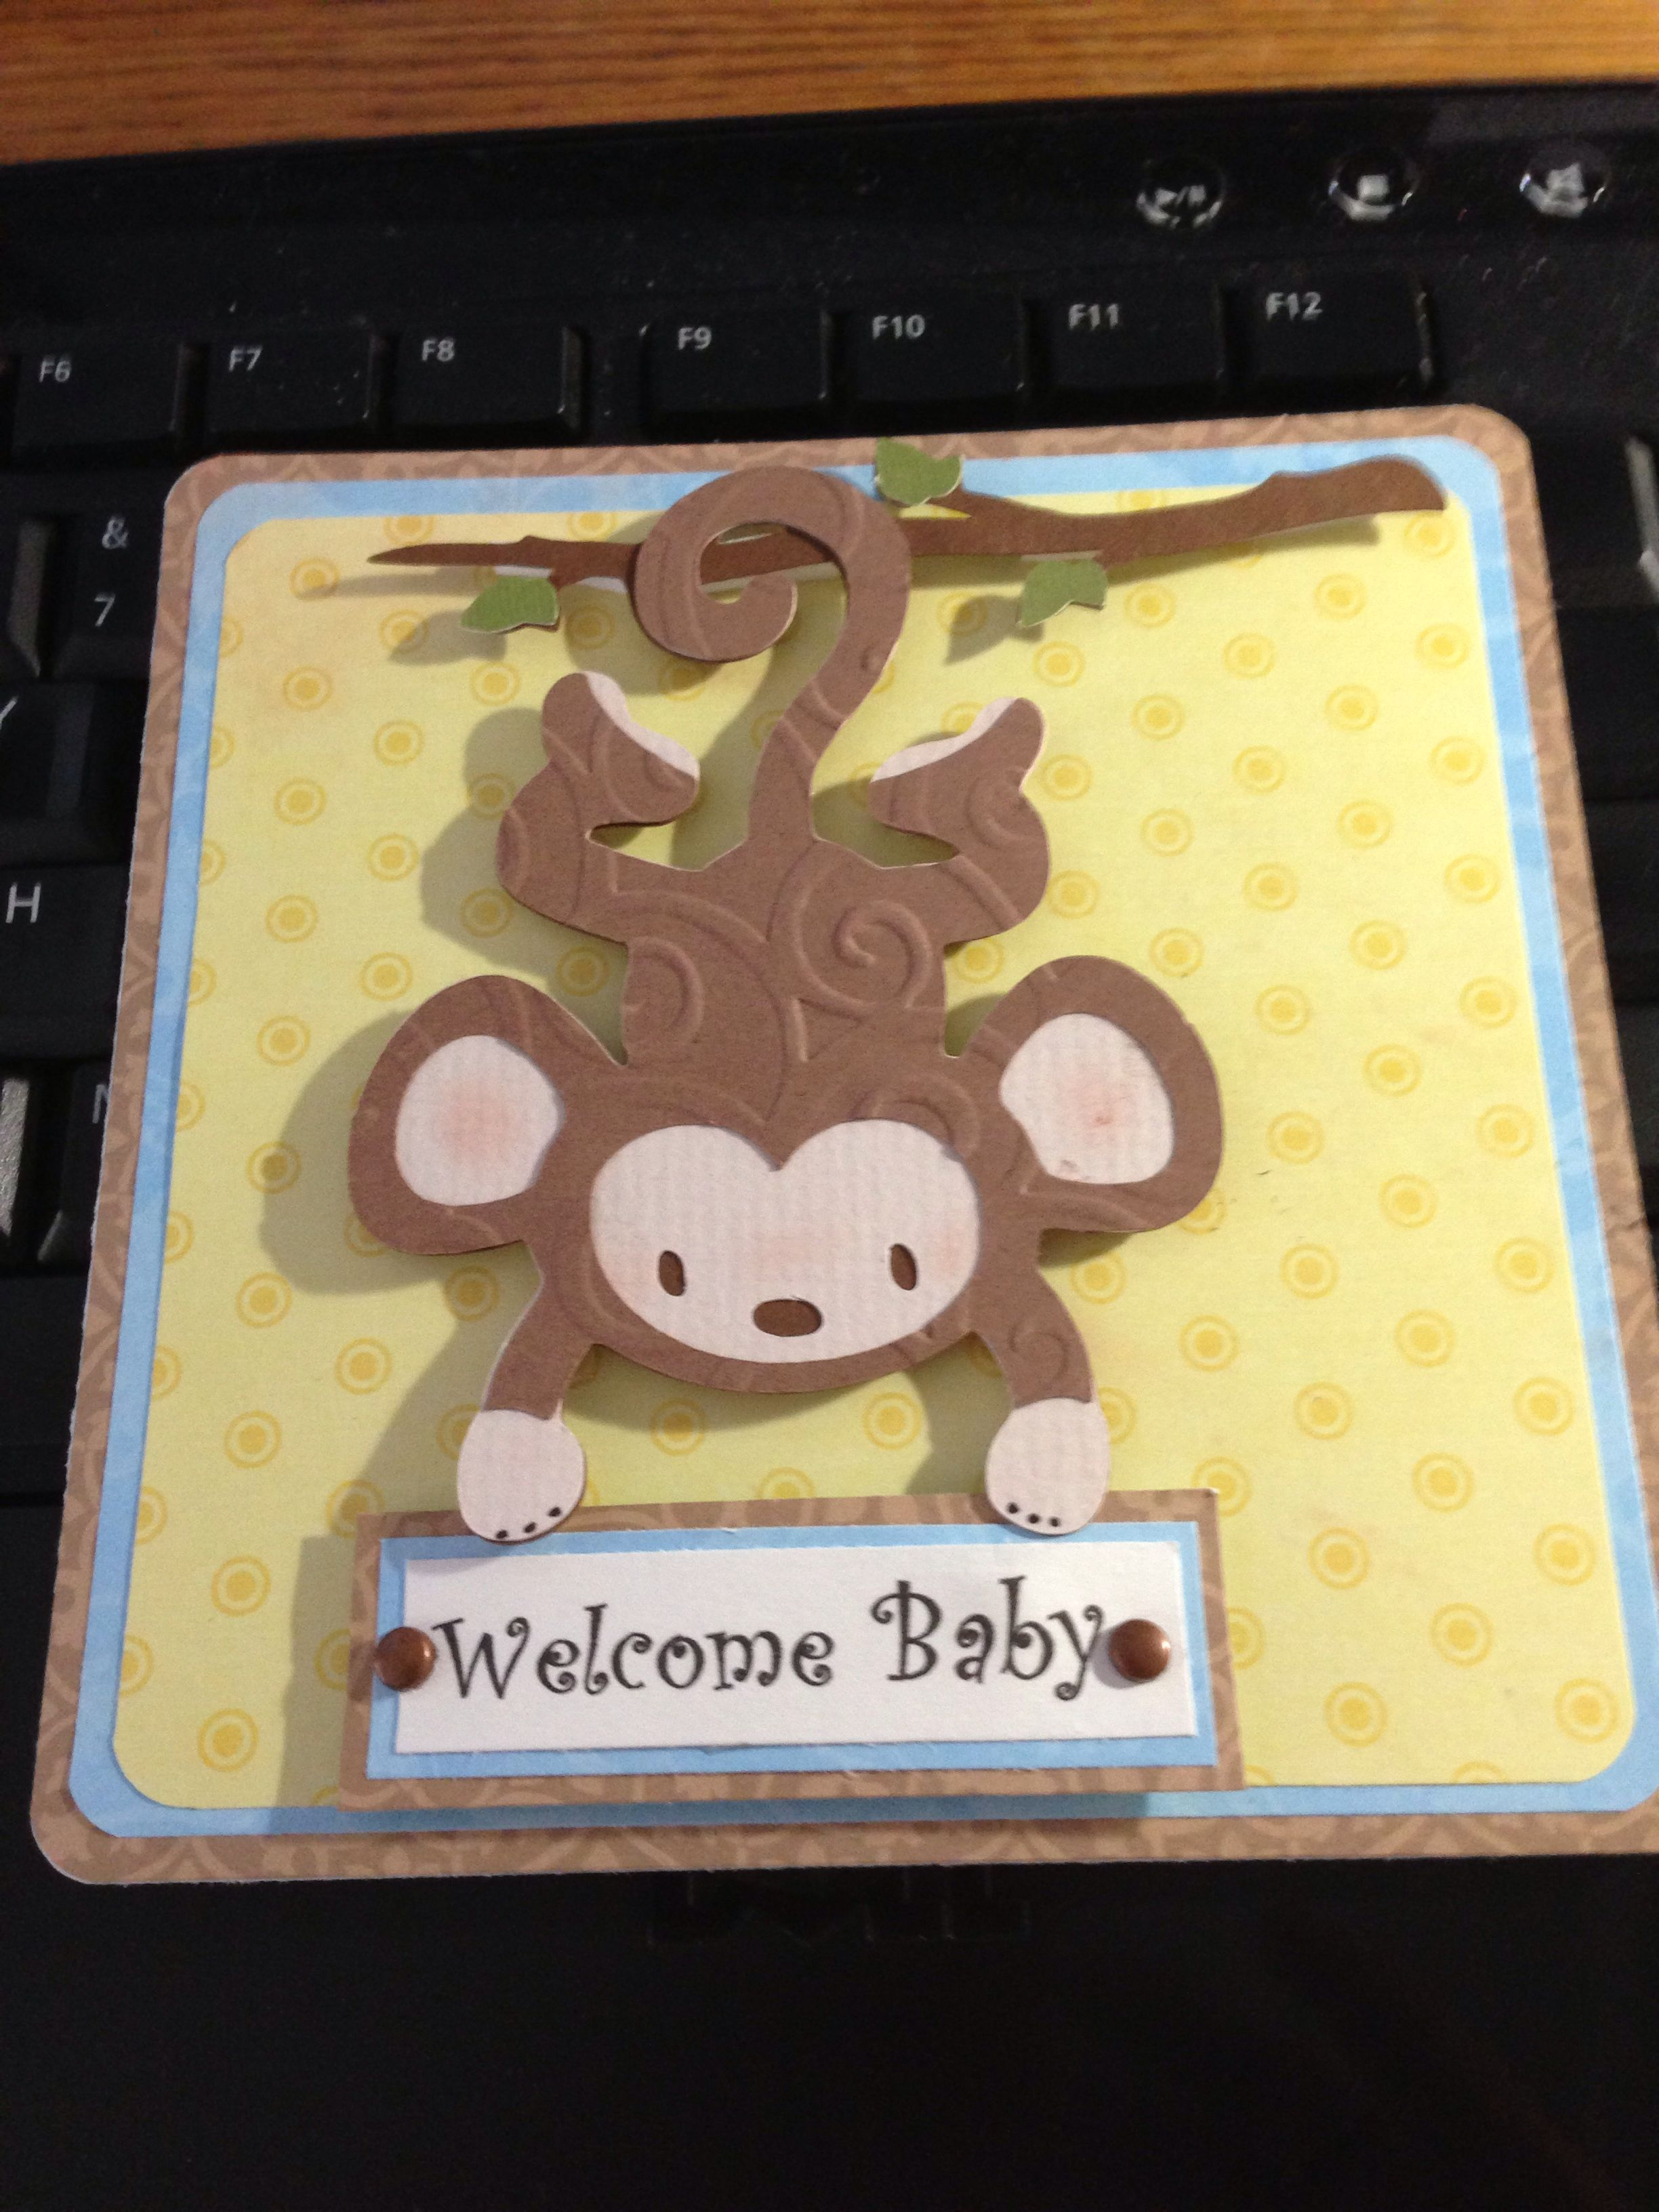 Garden decor for baby shower  Baby shower card  Cards by Me Rebecca Clowers  Pinterest  Babies